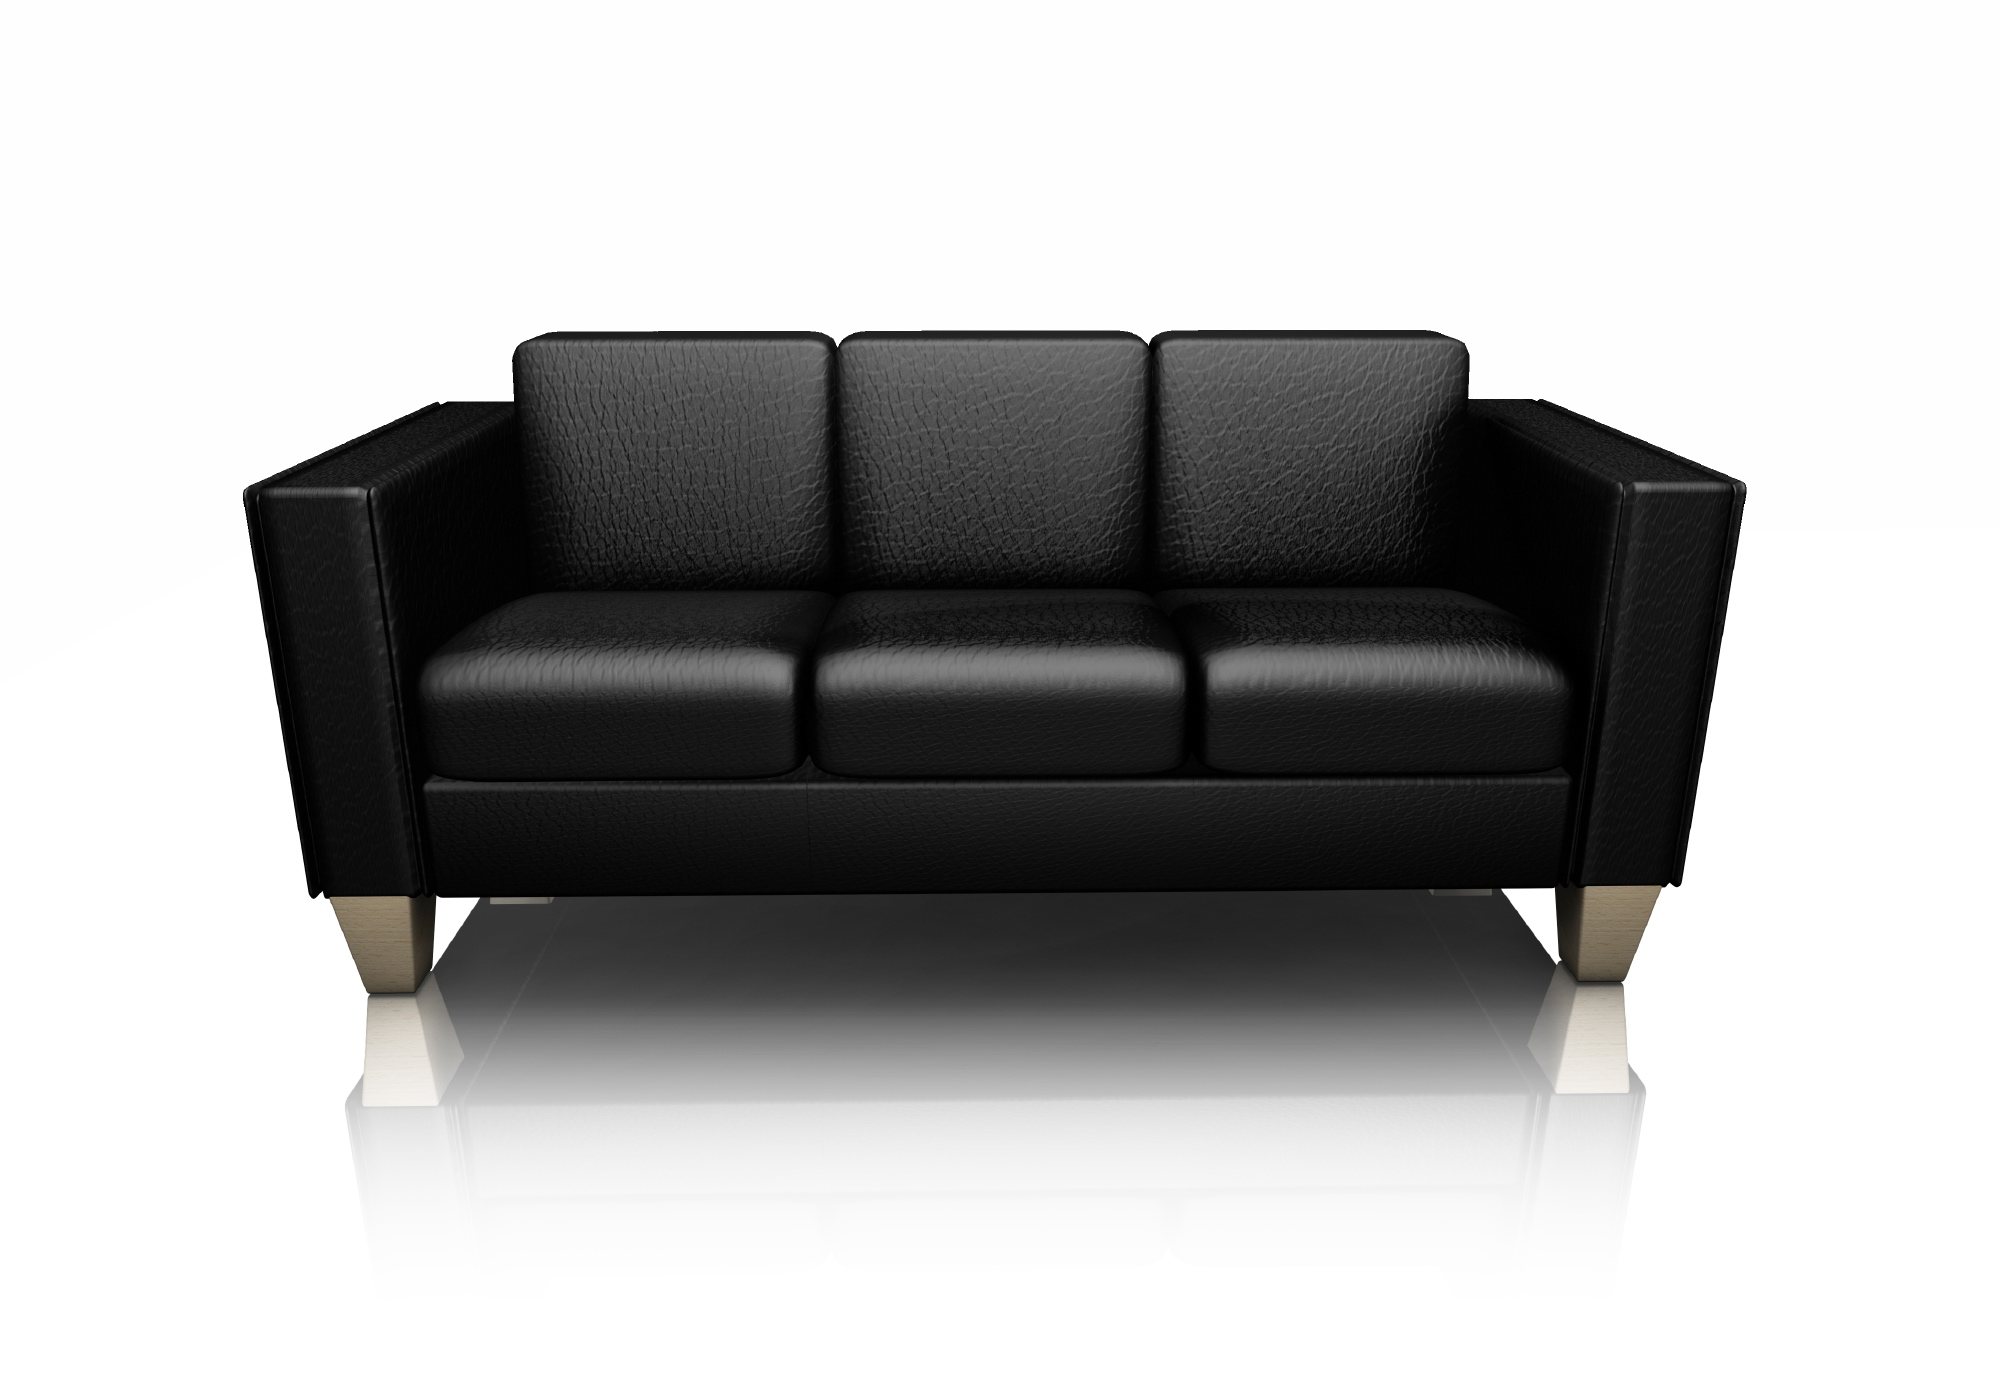 Couch Images Reverse Search